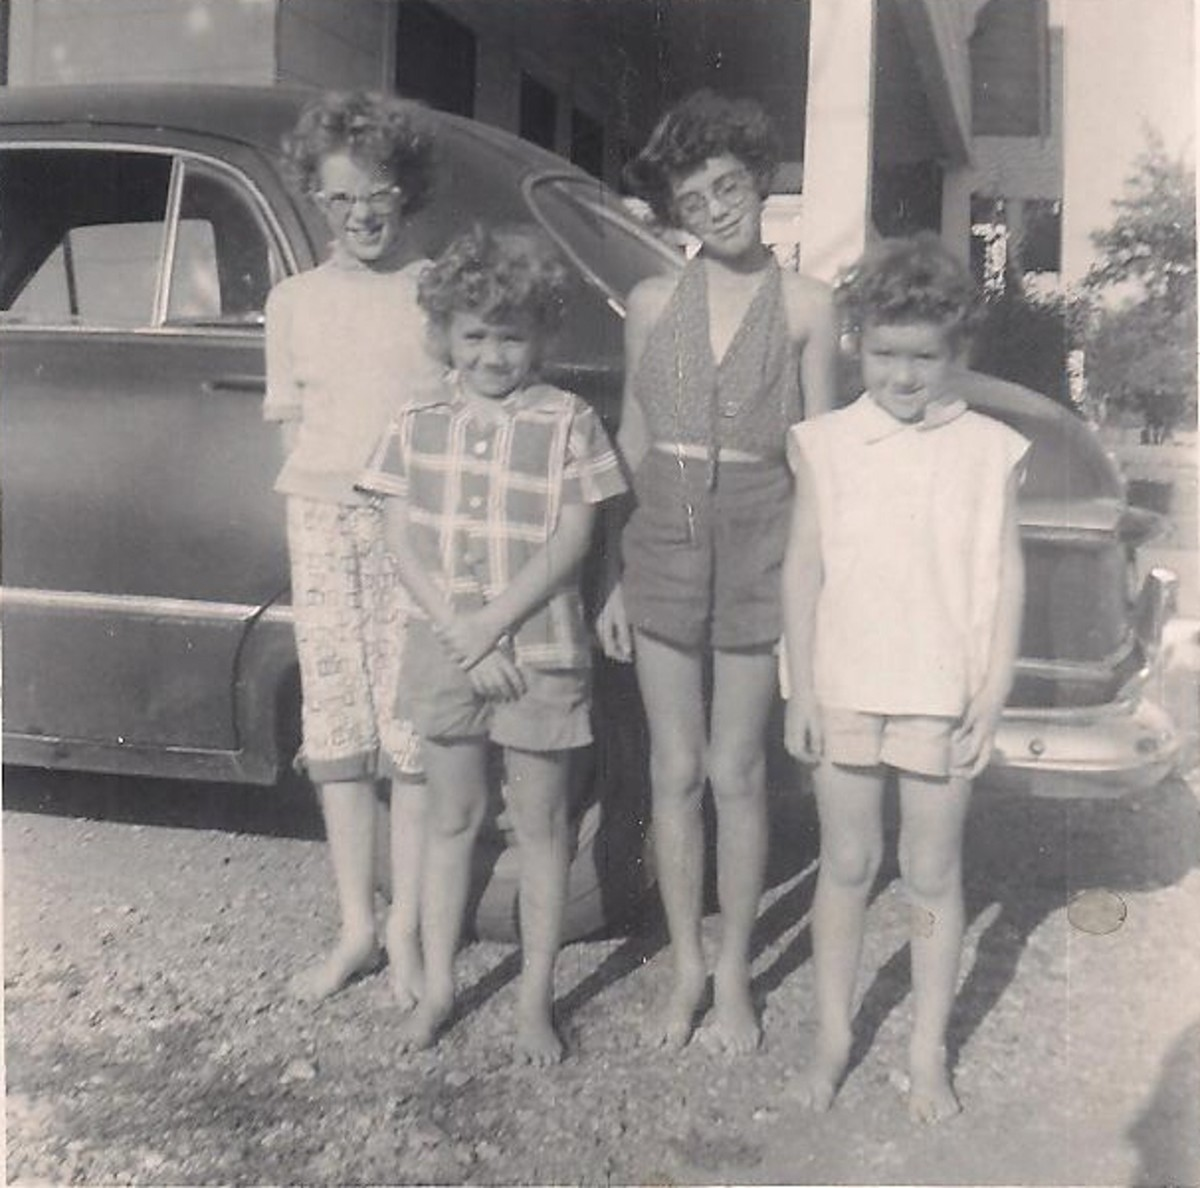 Me and my sisters pause for a moment for a picture back in the 1950s.